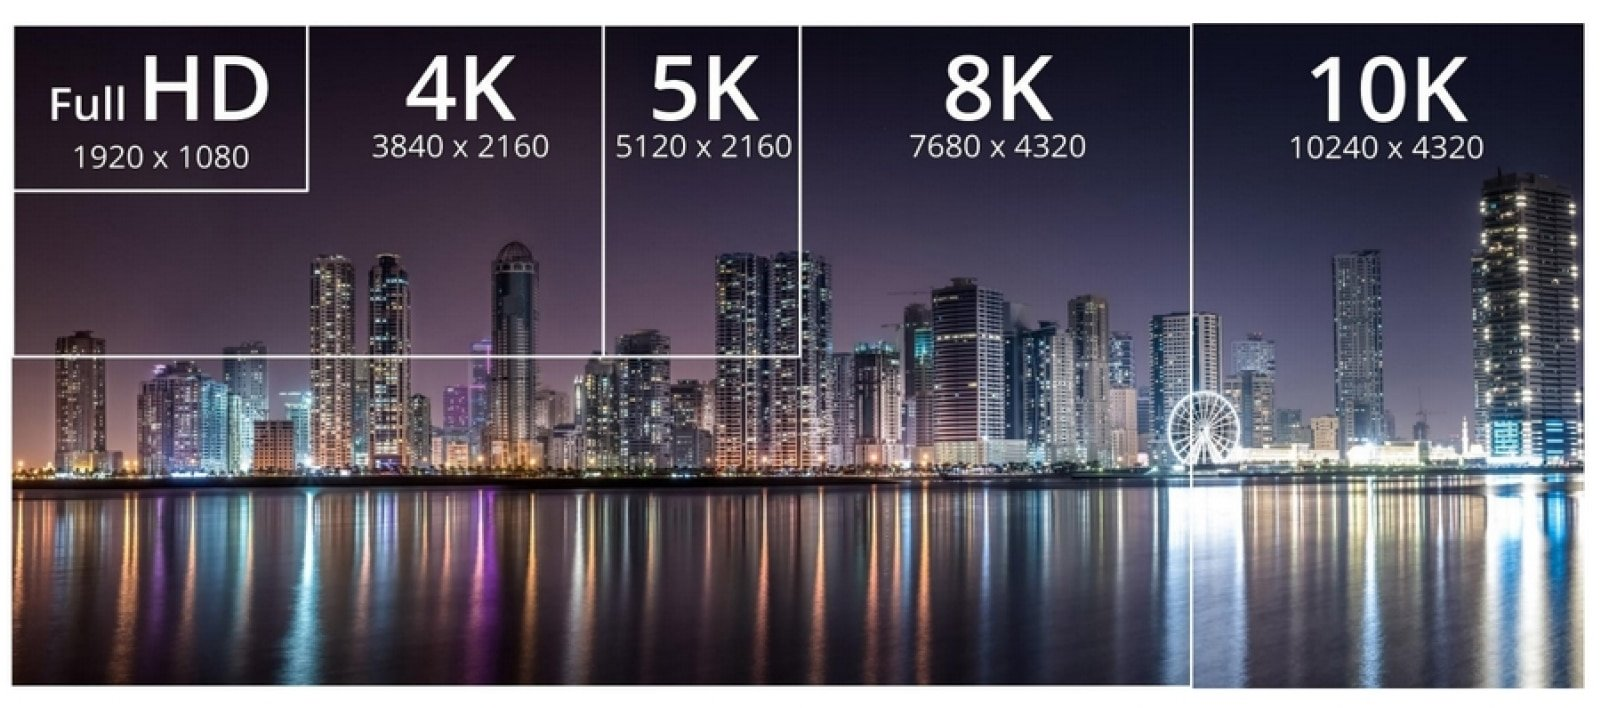 4k, 5k, 8k, 10k resolutions compared